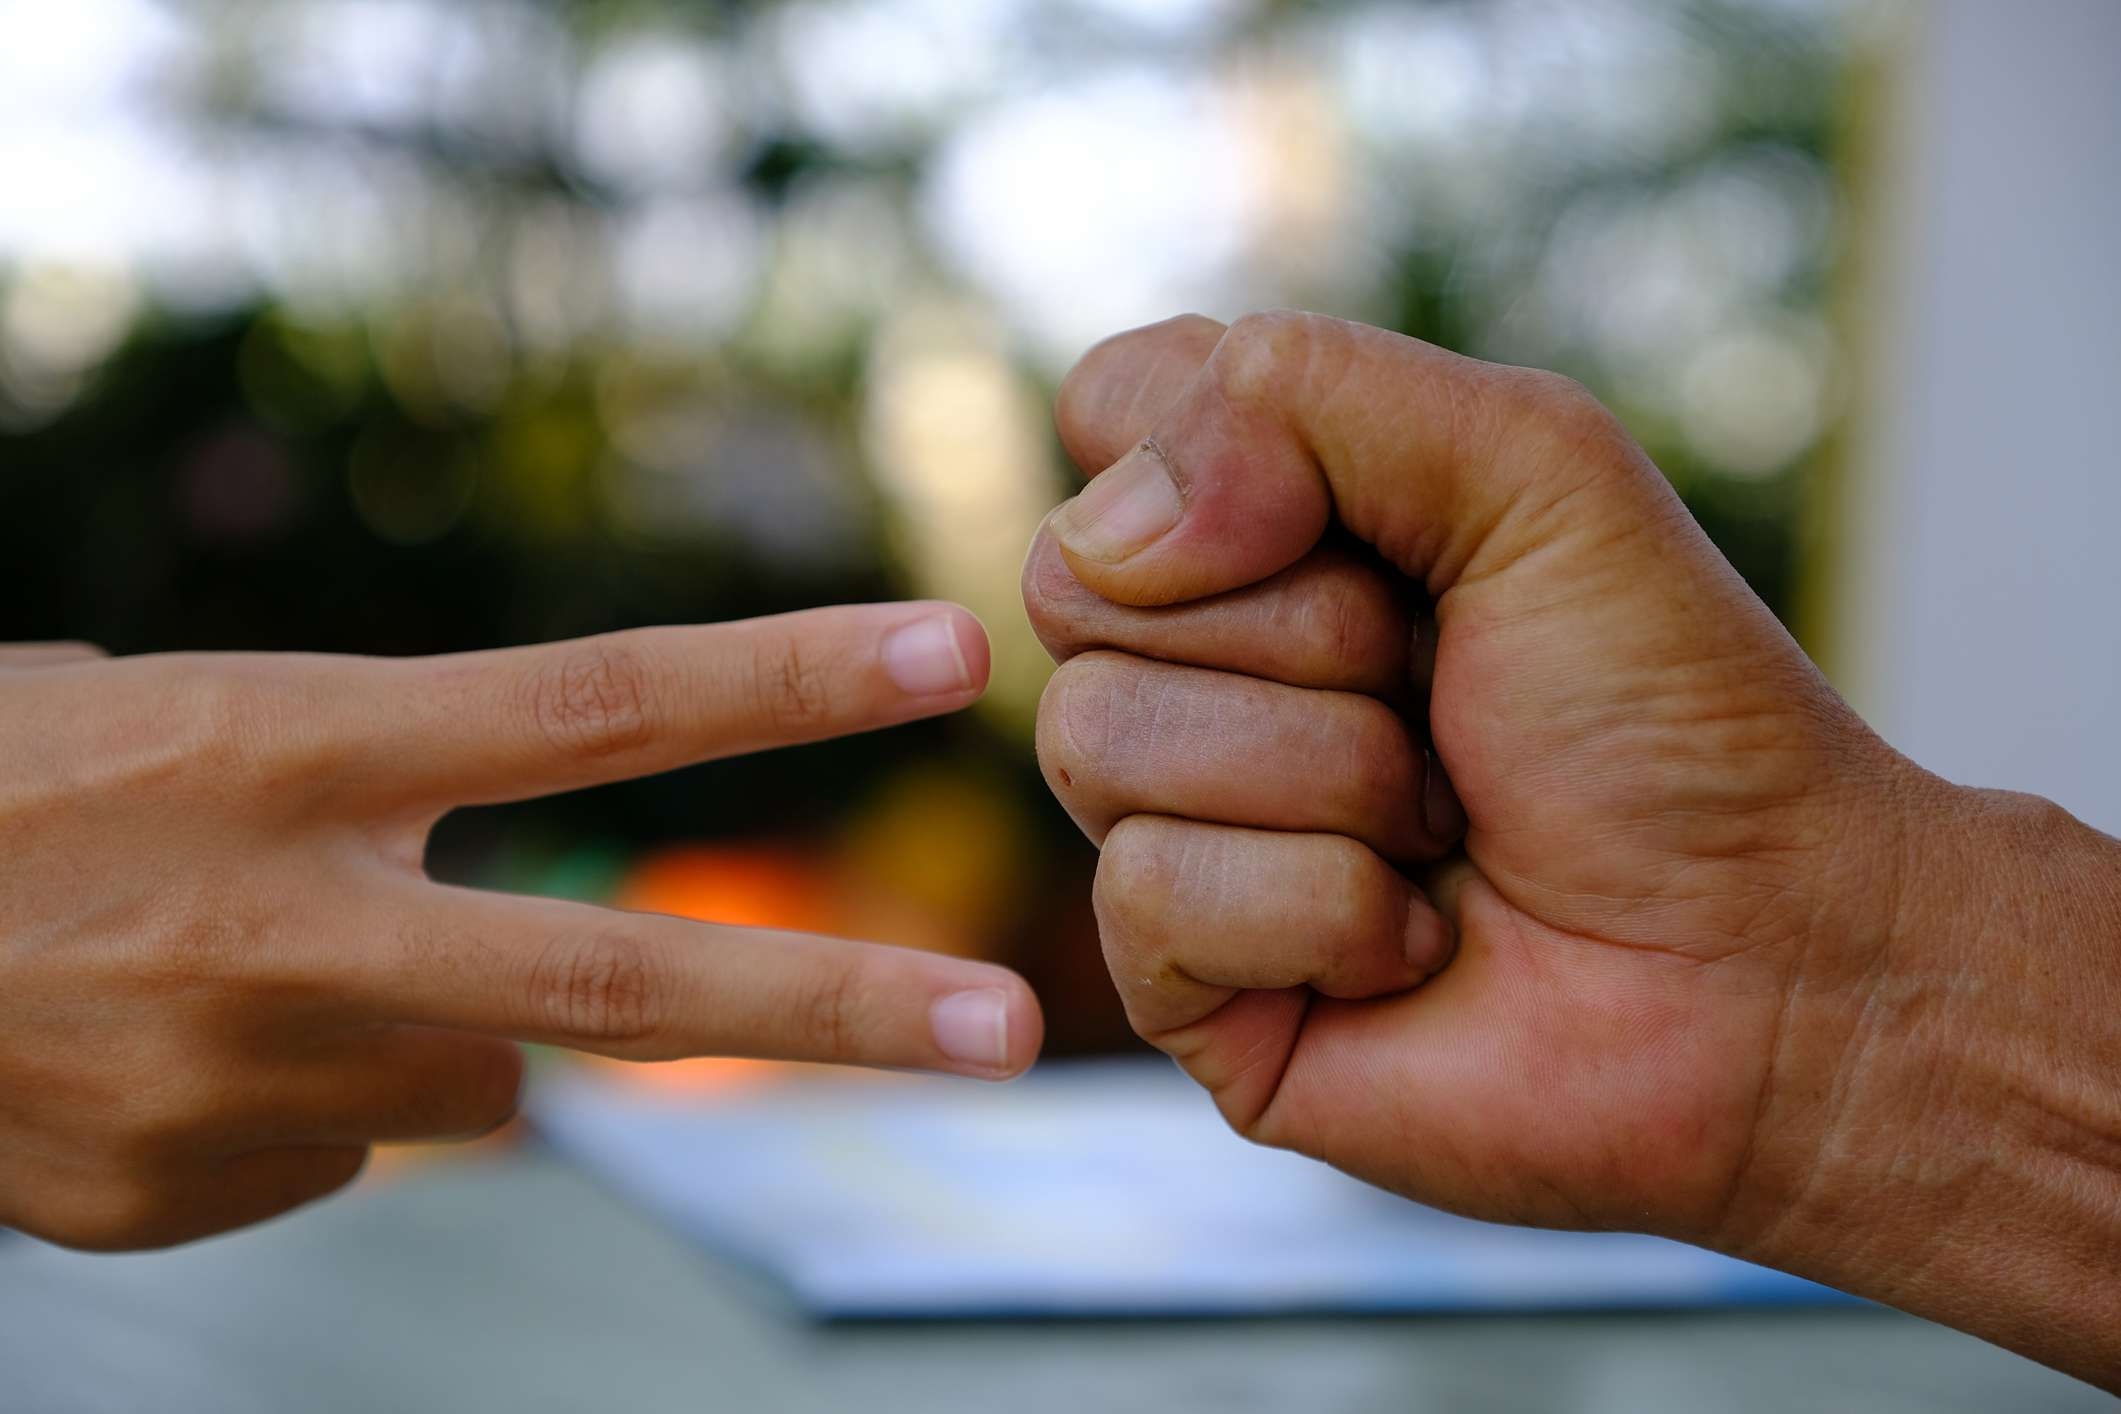 Cropped Image Of People Playing Rock Paper Scissors Outdoors